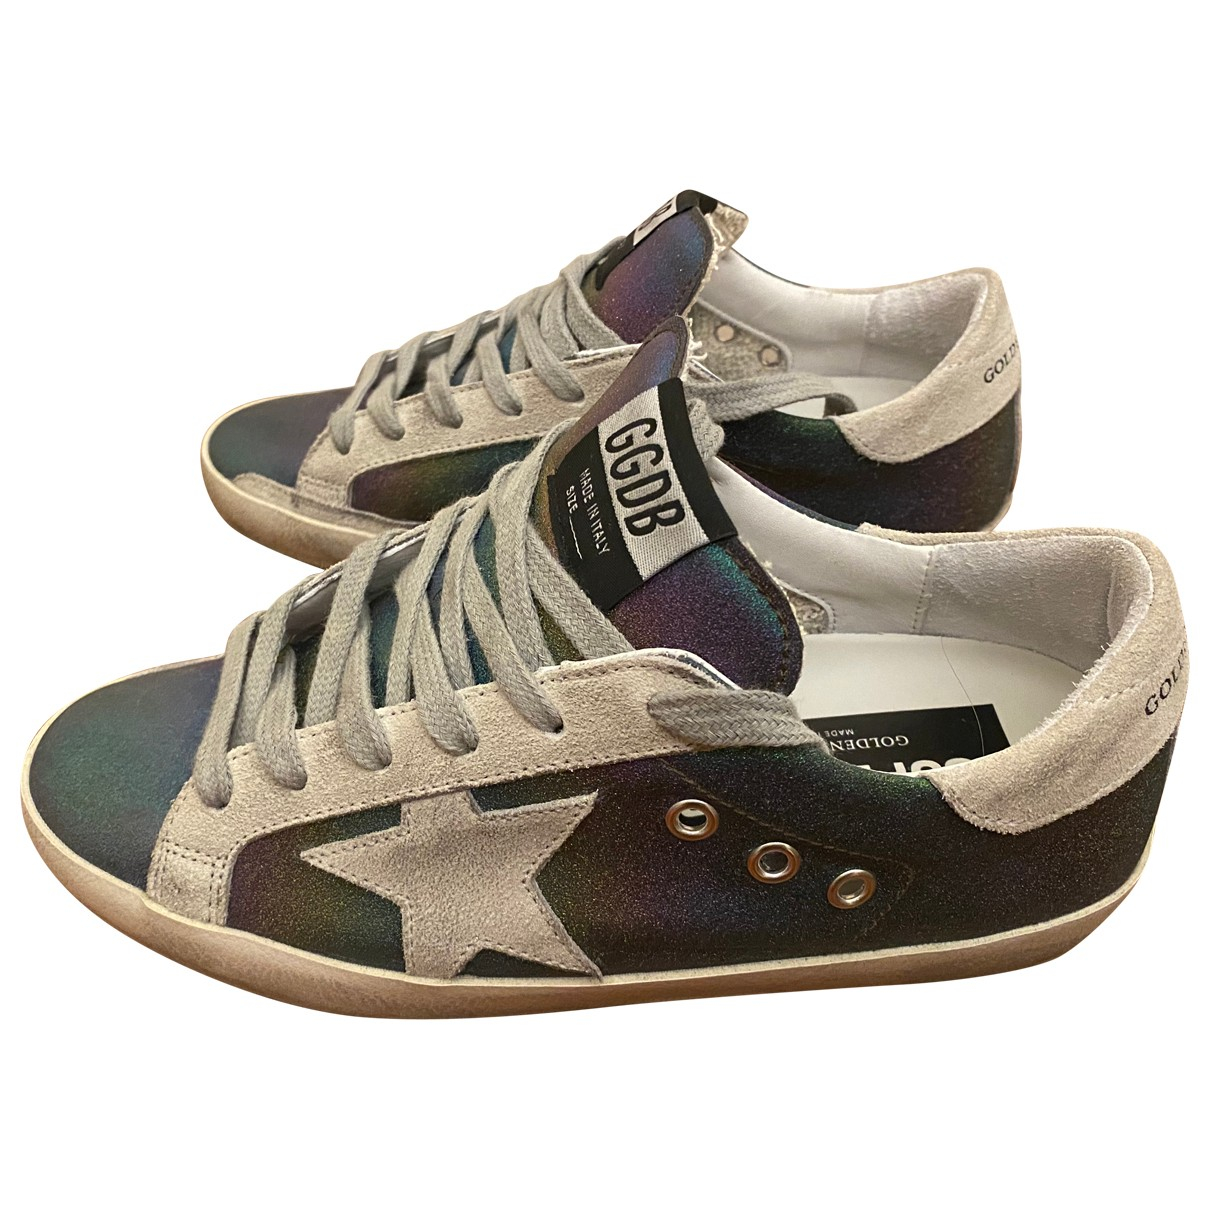 Golden Goose Superstar Multicolour Leather Trainers for Women 36 EU